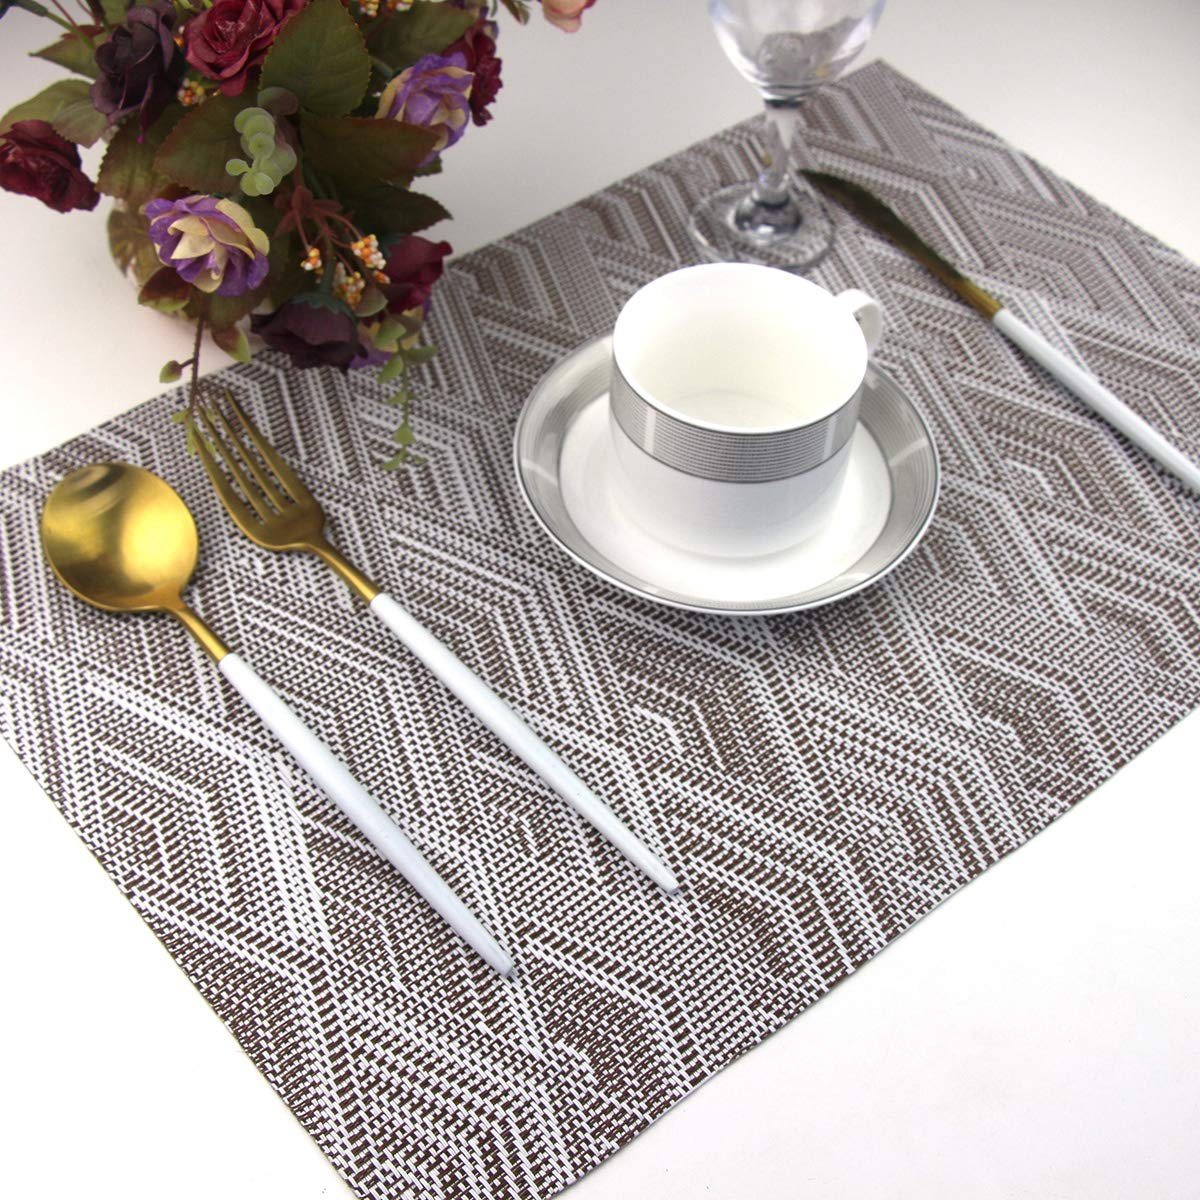 BeChen Vinyl Placemats,Washable Table Mats Easy to Clean Woven Placemats for Dining Table Set of 4 Blue